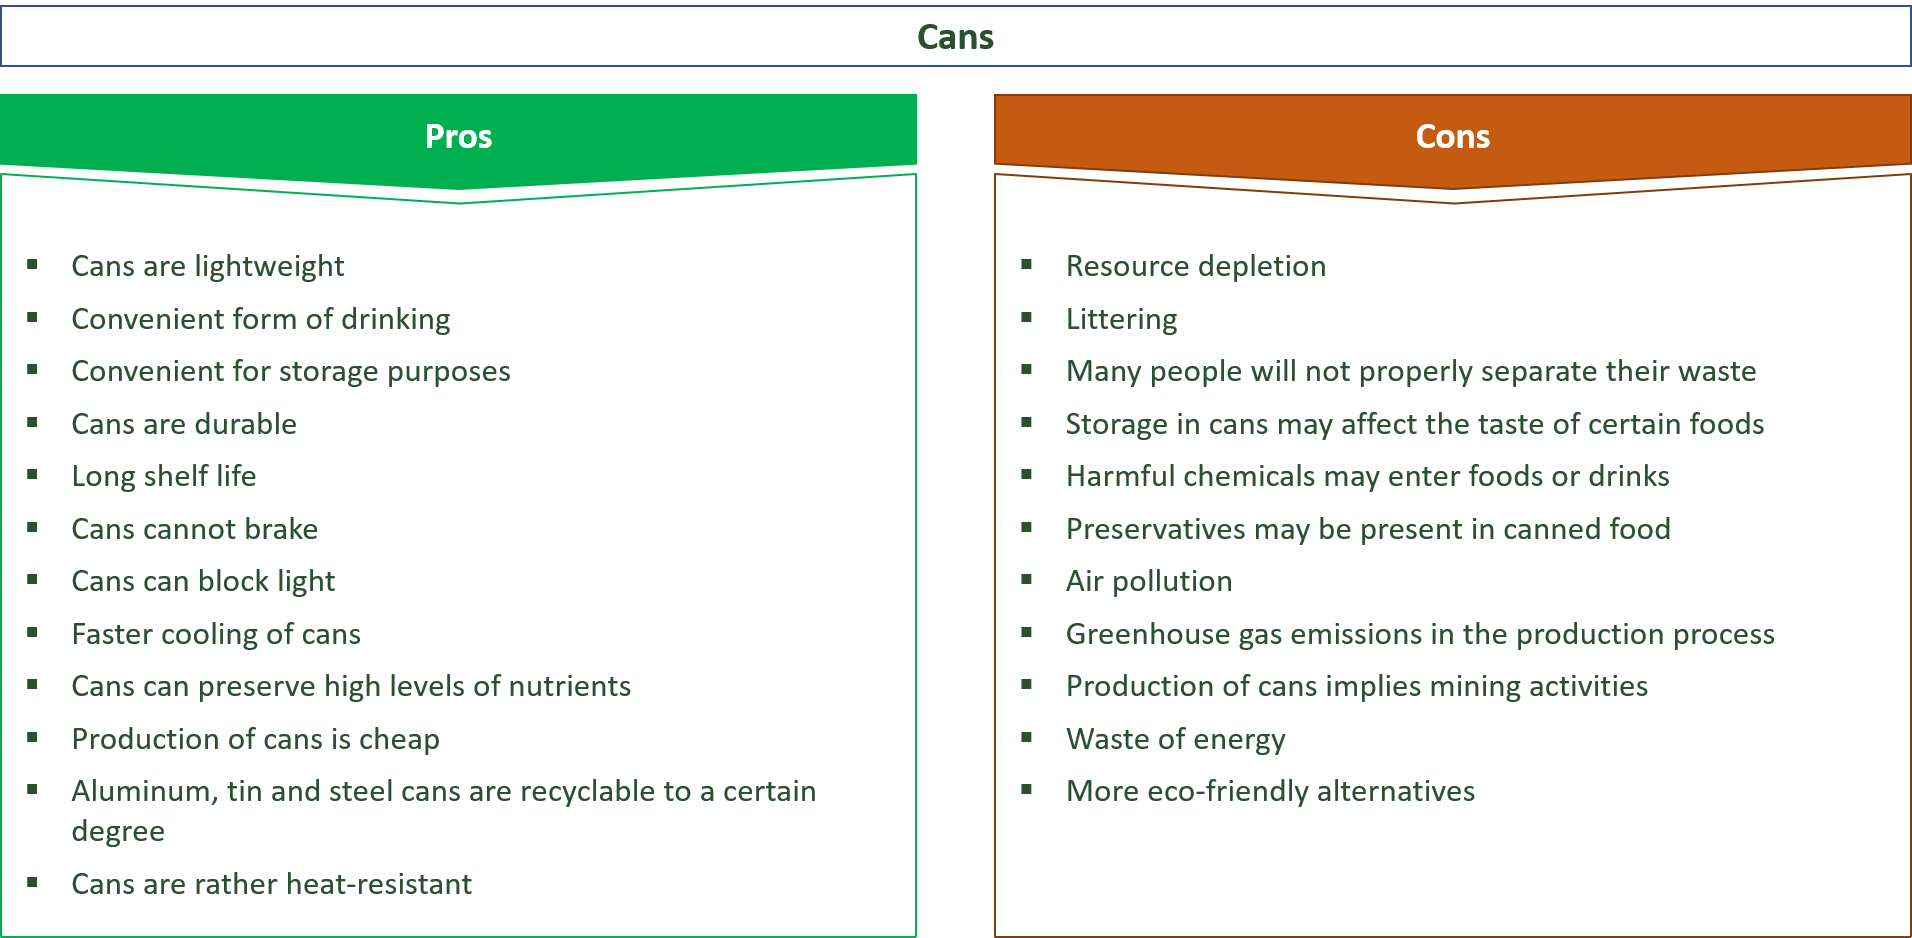 advantages and disadvantages of cans and canned food